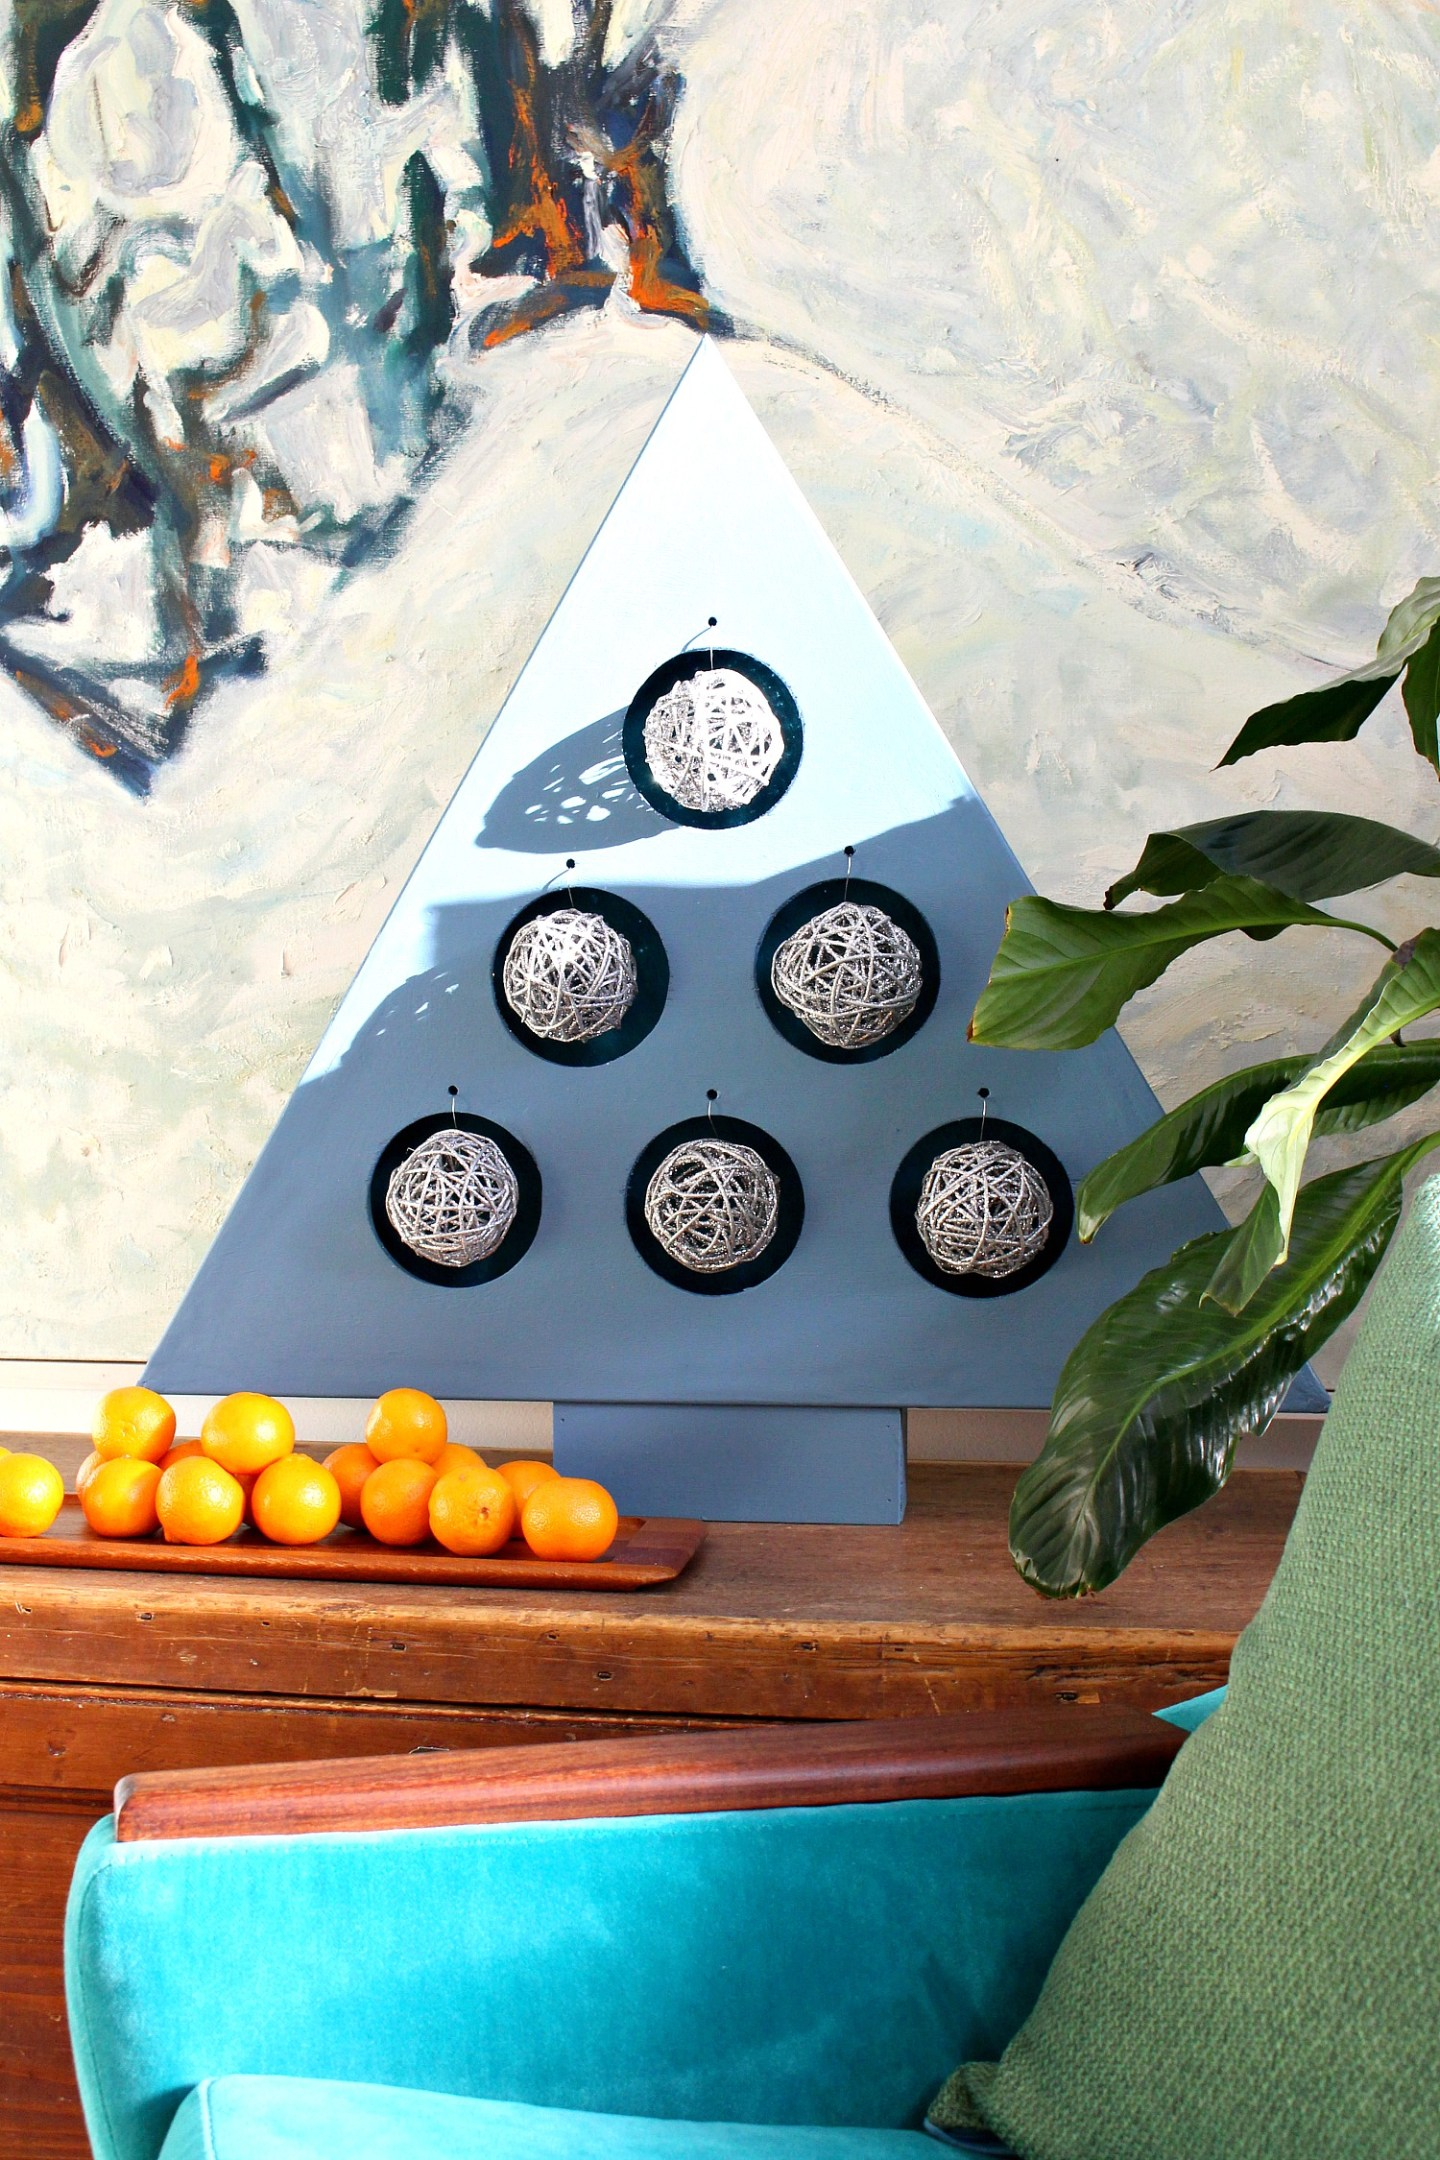 DIY Plywood Ornament Stand with Lights